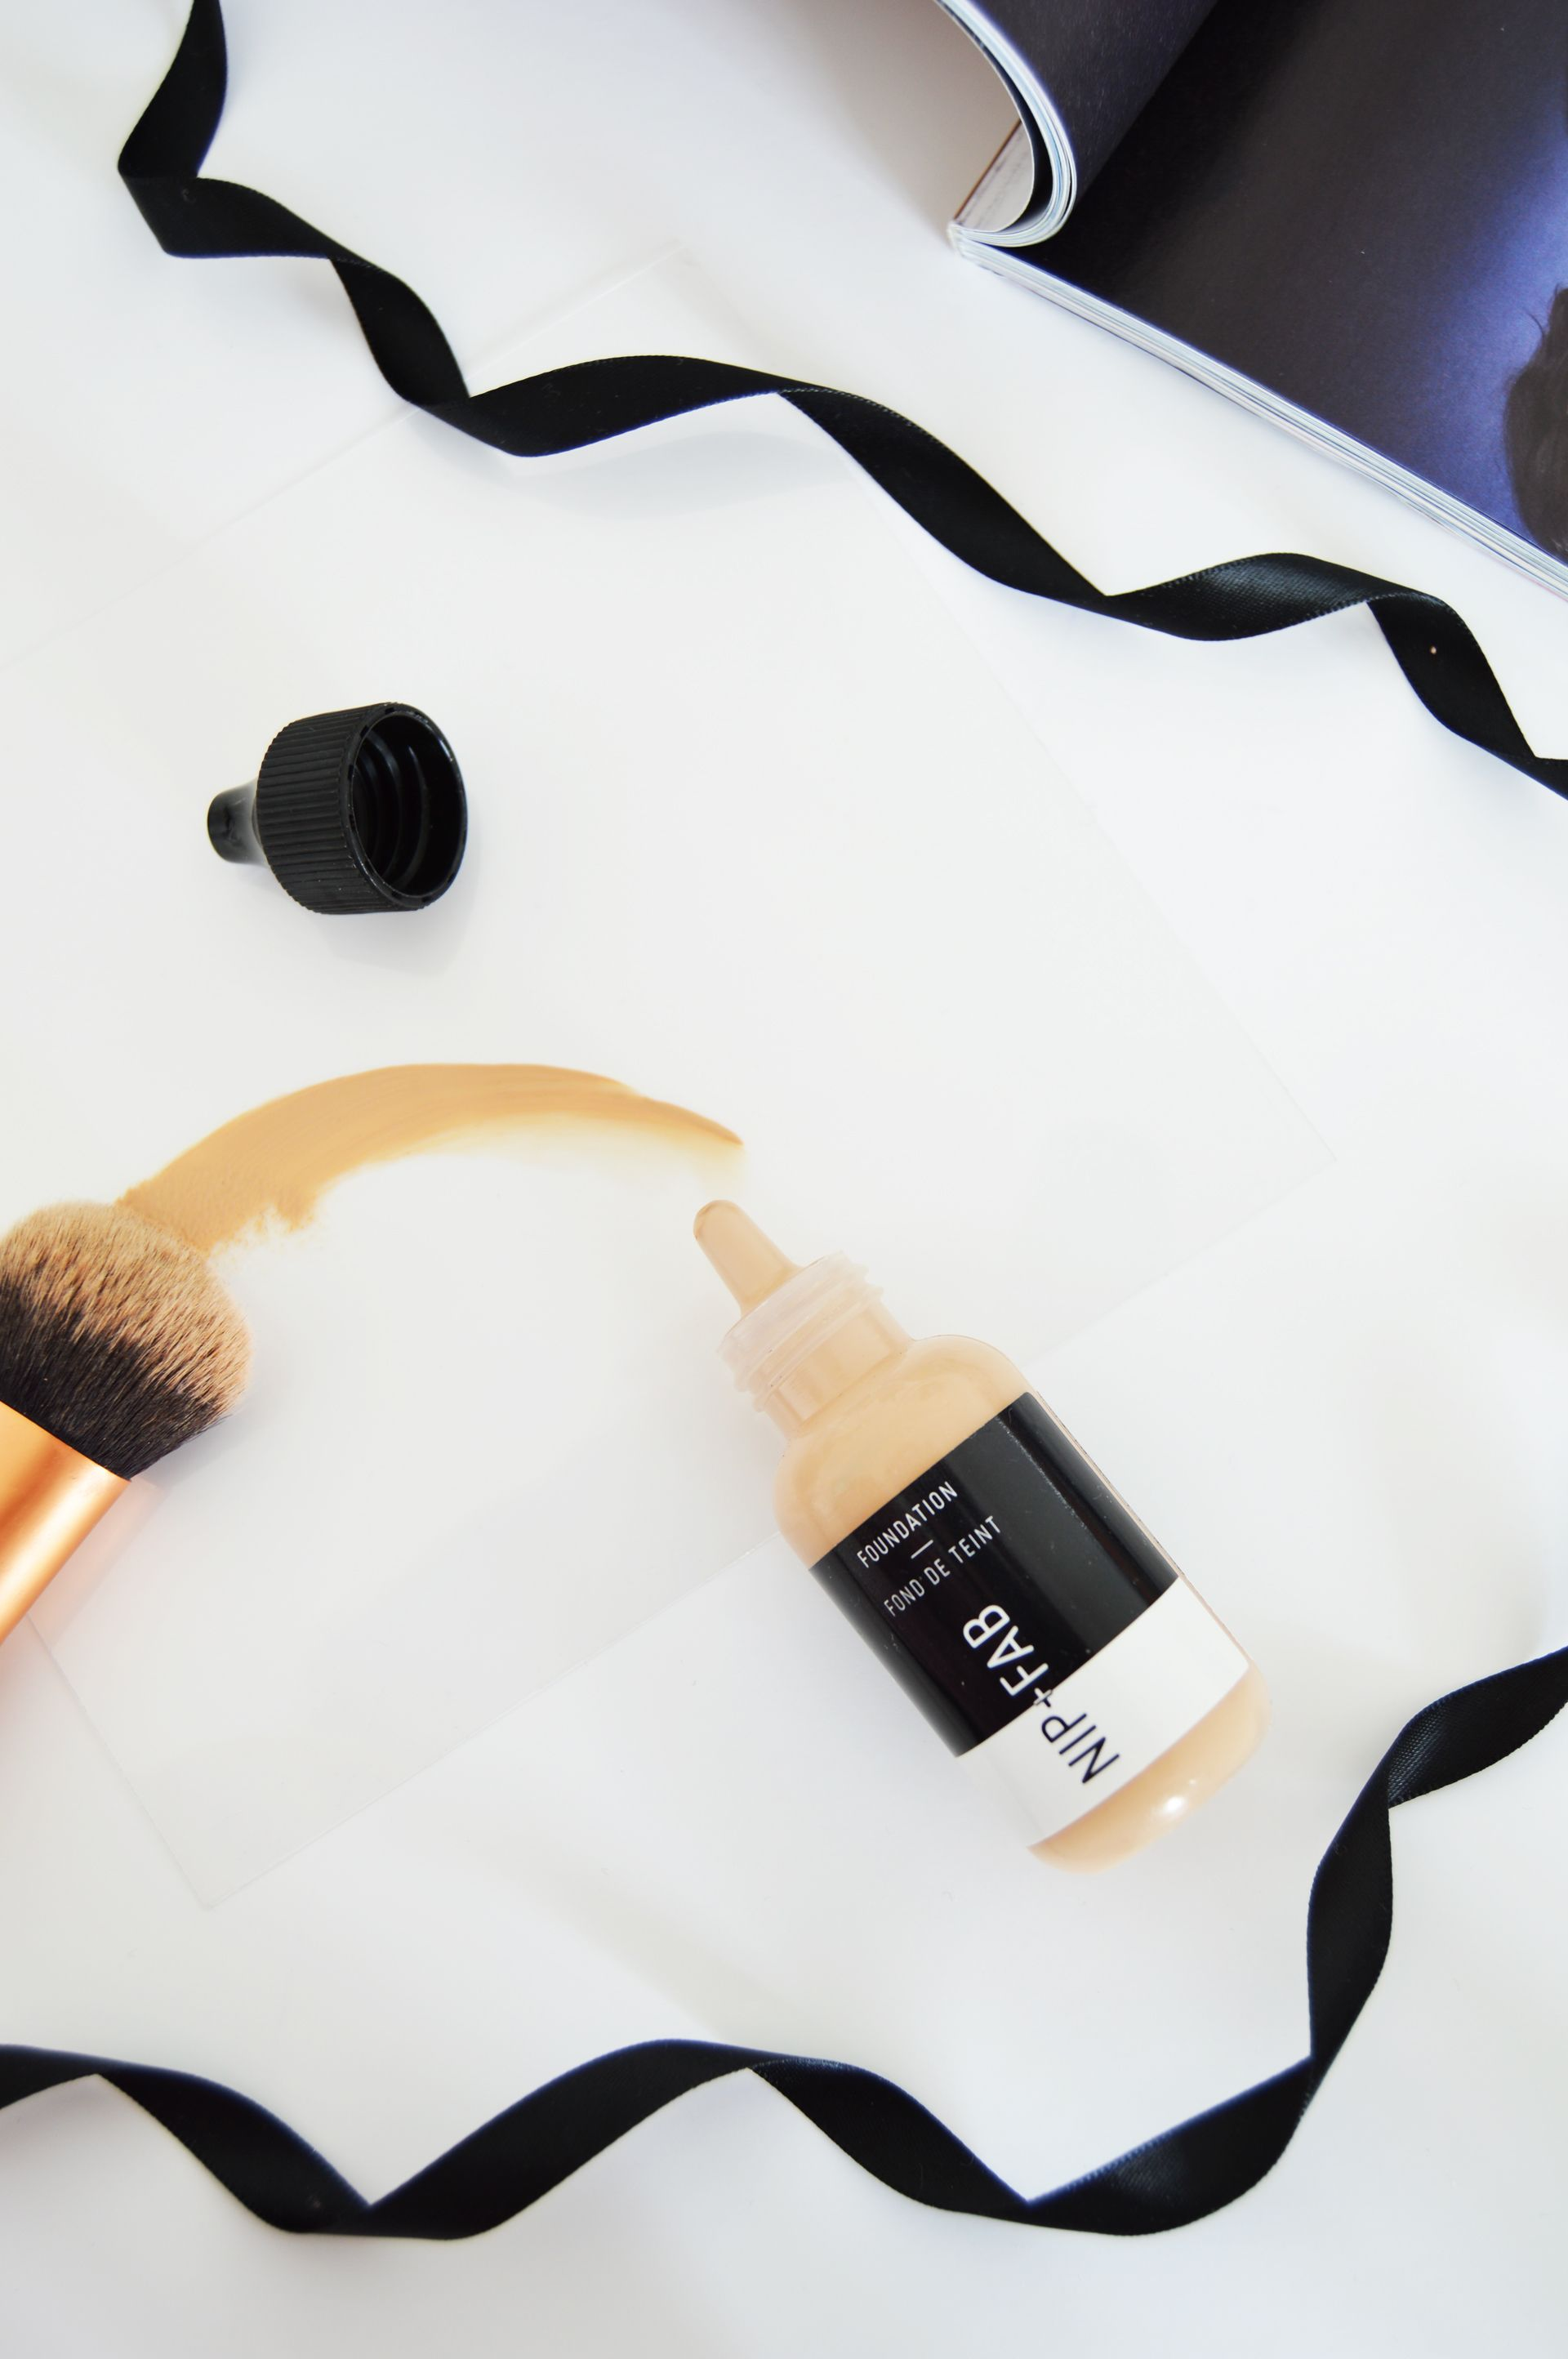 Nip + Fab Foundation claims to give you photoshopped #nofilter look. Nip + Fab Foundation review is on the blog, to find out more about it, please check out the post.